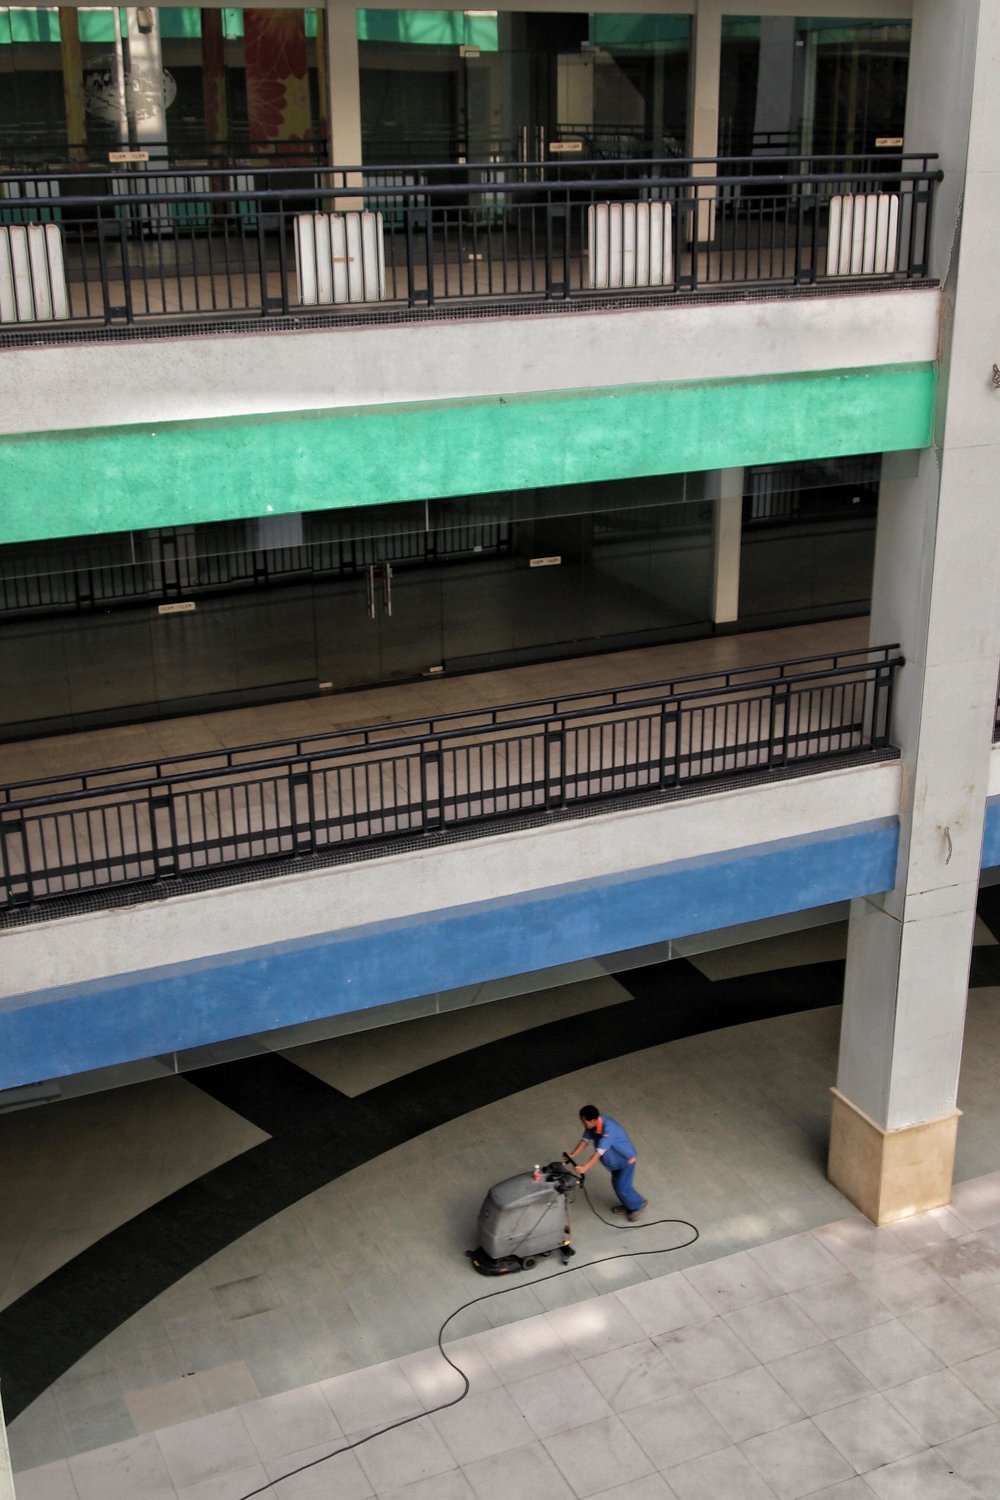 A cleaner at work in the empty New South China Mall in Dongguan, China. Photo: (C) Remko Tanis